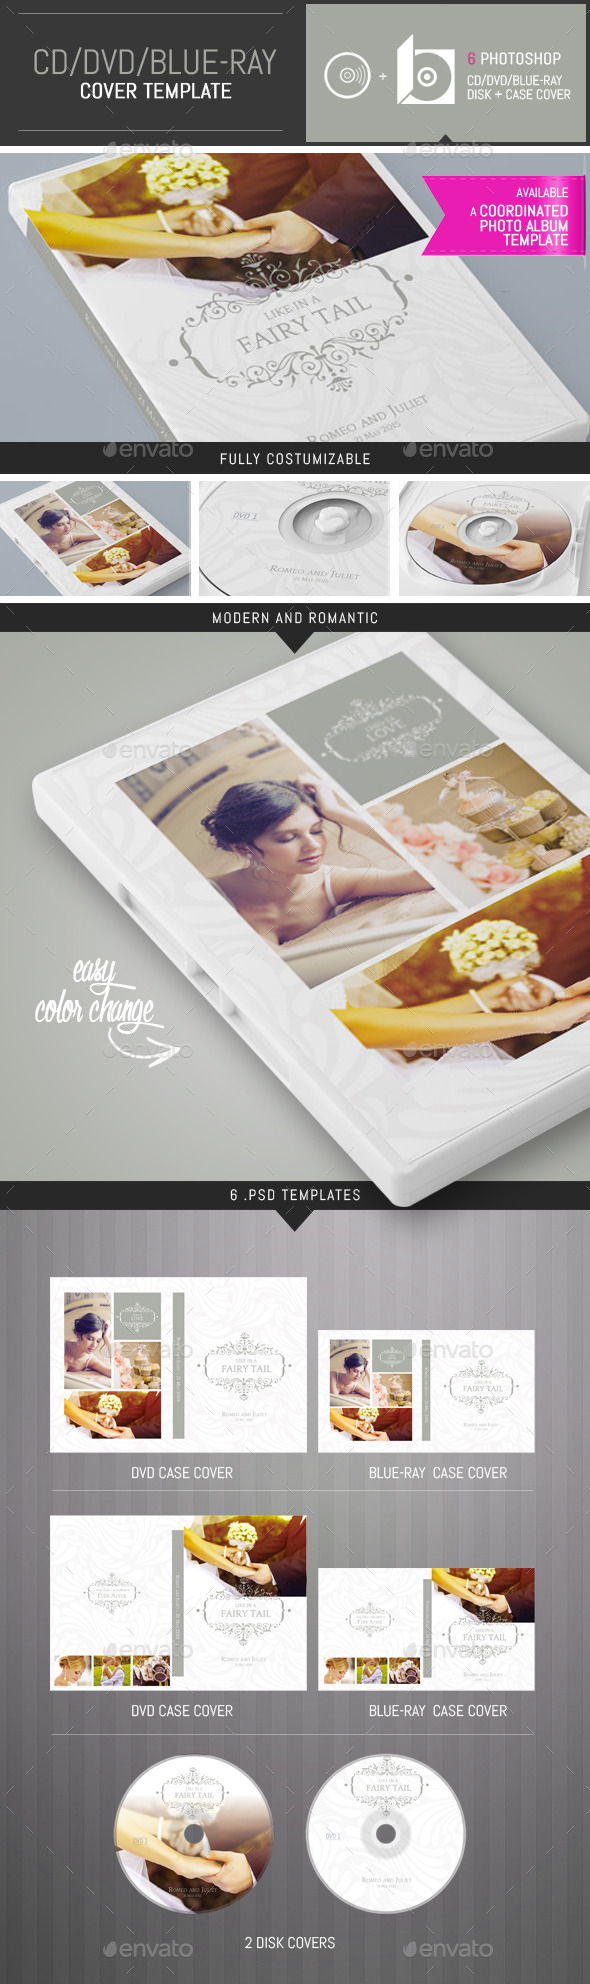 Wedding Album Photoshop Graphics, Designs & Templates